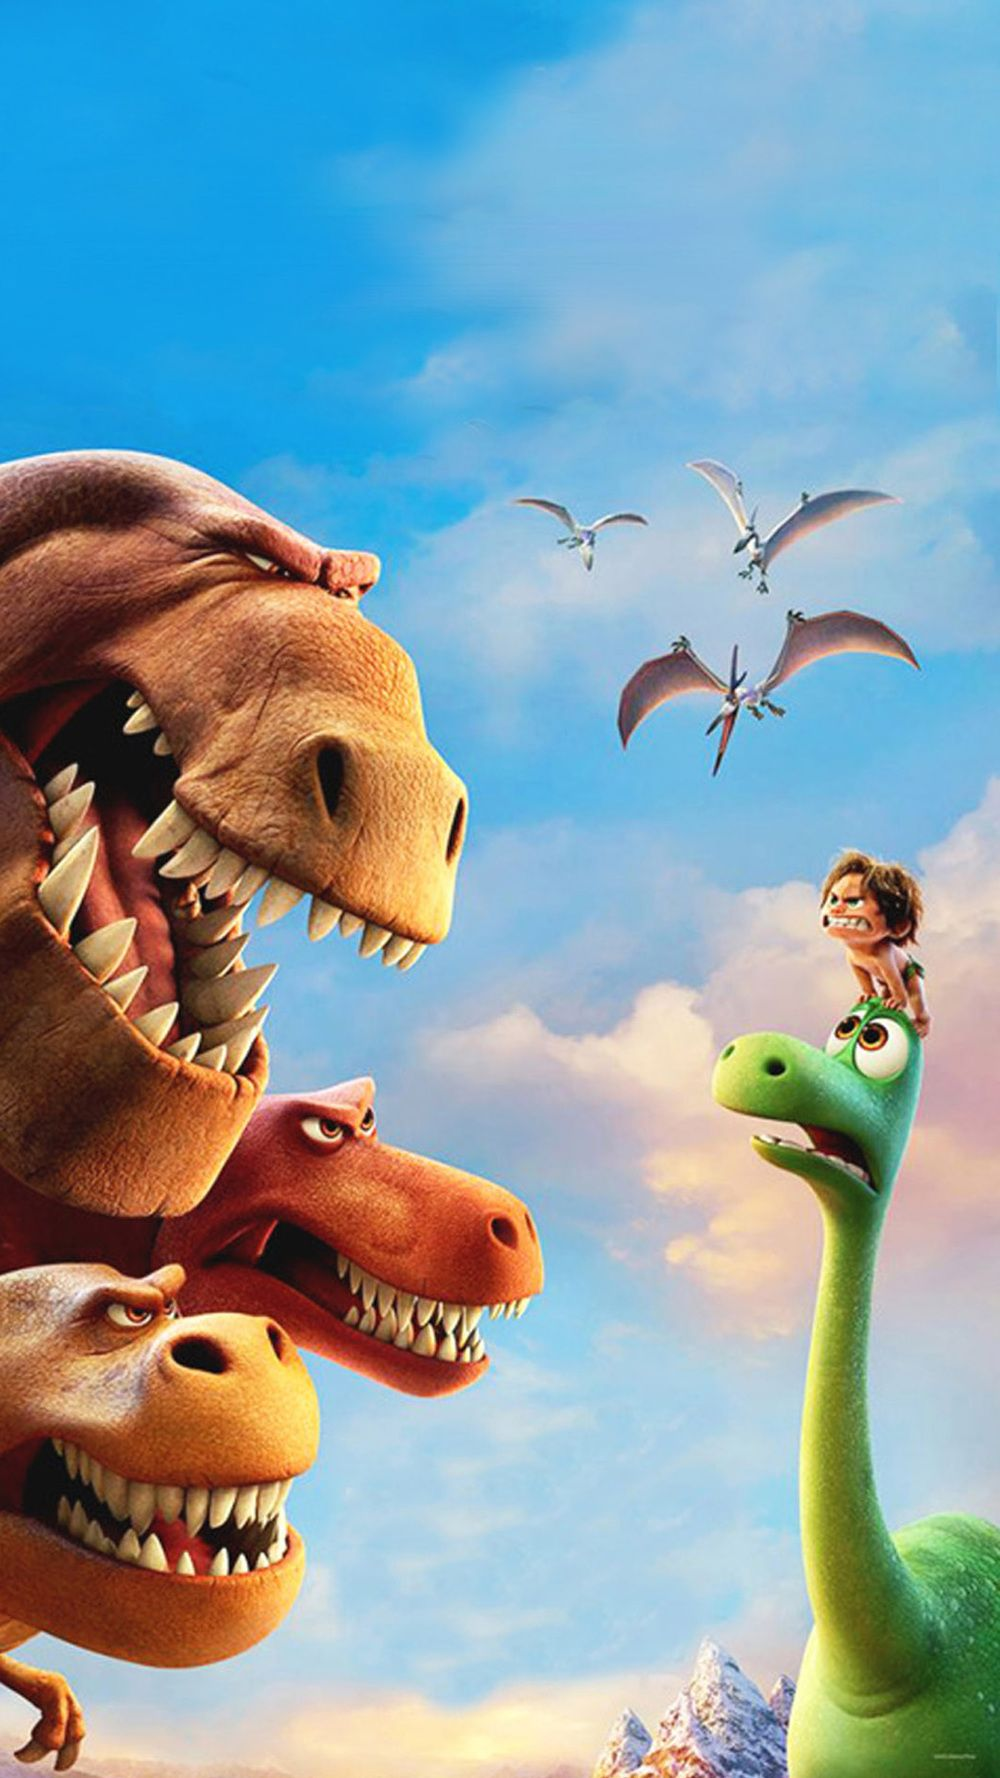 The Good Dinosaur Downloadable Wallpaper for iOS